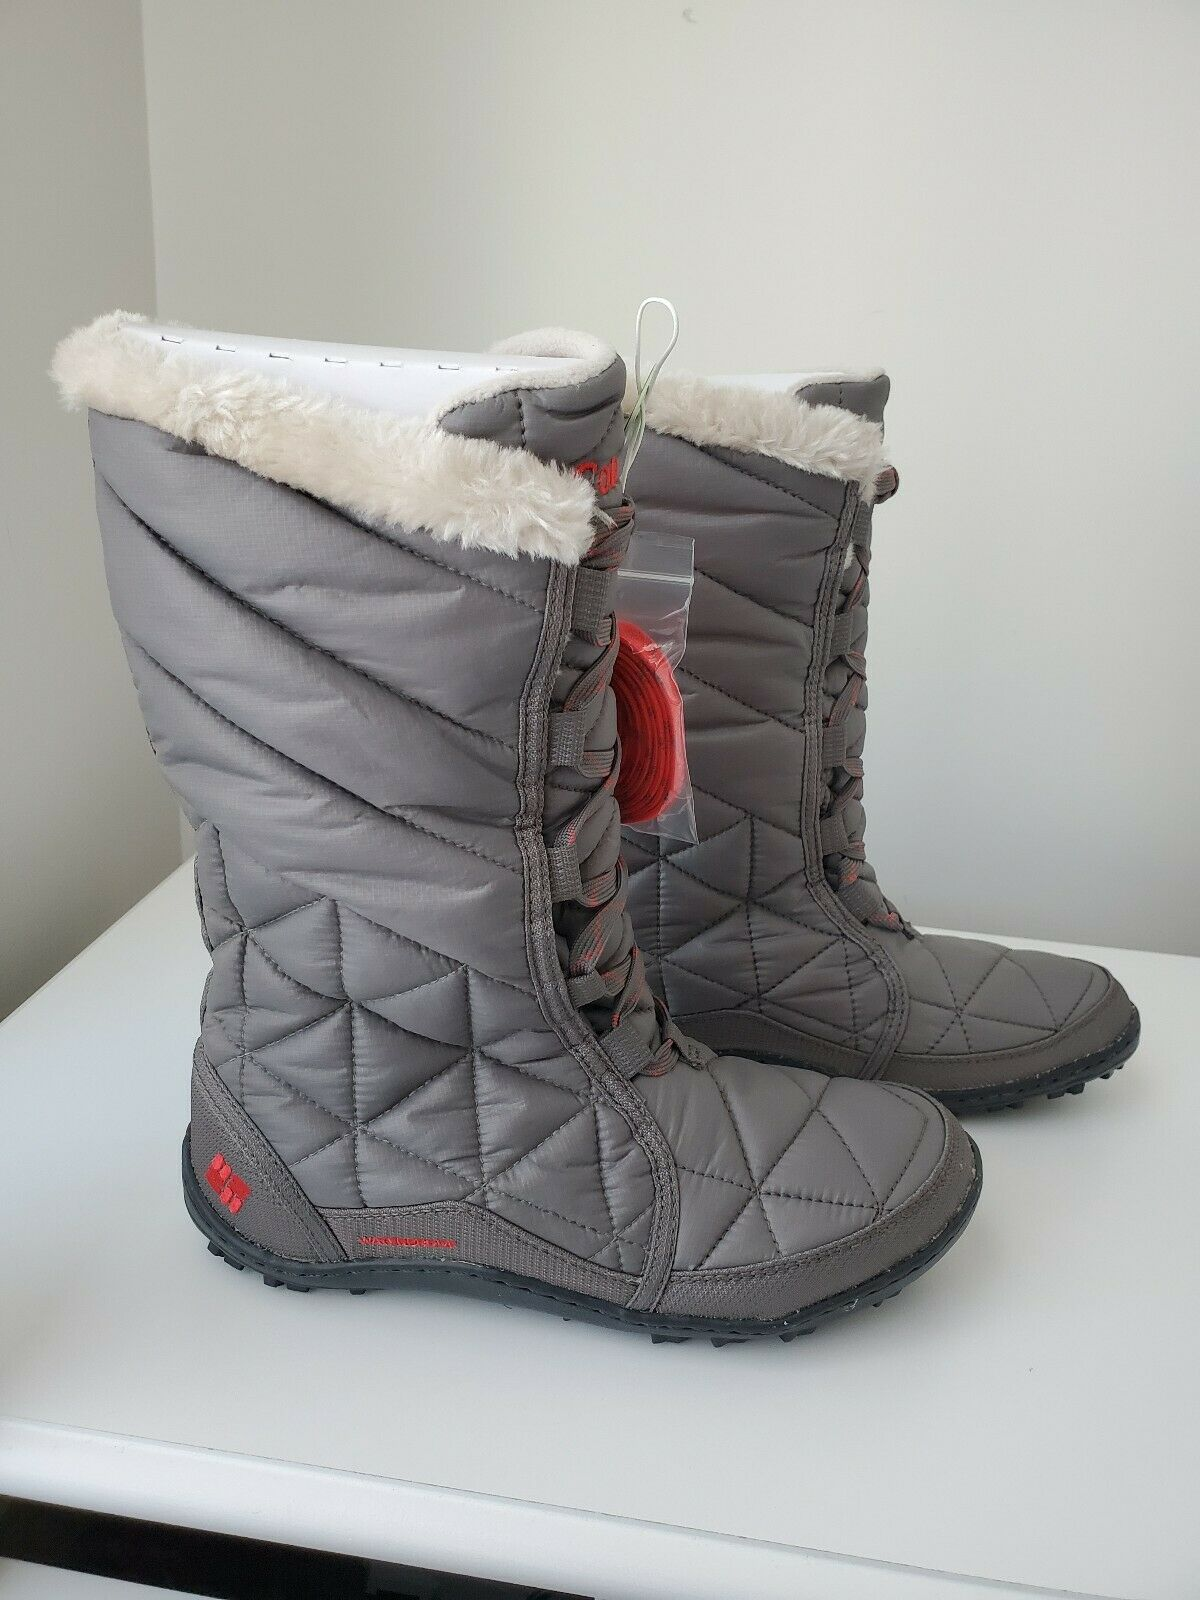 NIB WOMEN'S COLUMBIA INSULATED POWDER SUMMIT  INSULATED BOOTS SIZE 9.5